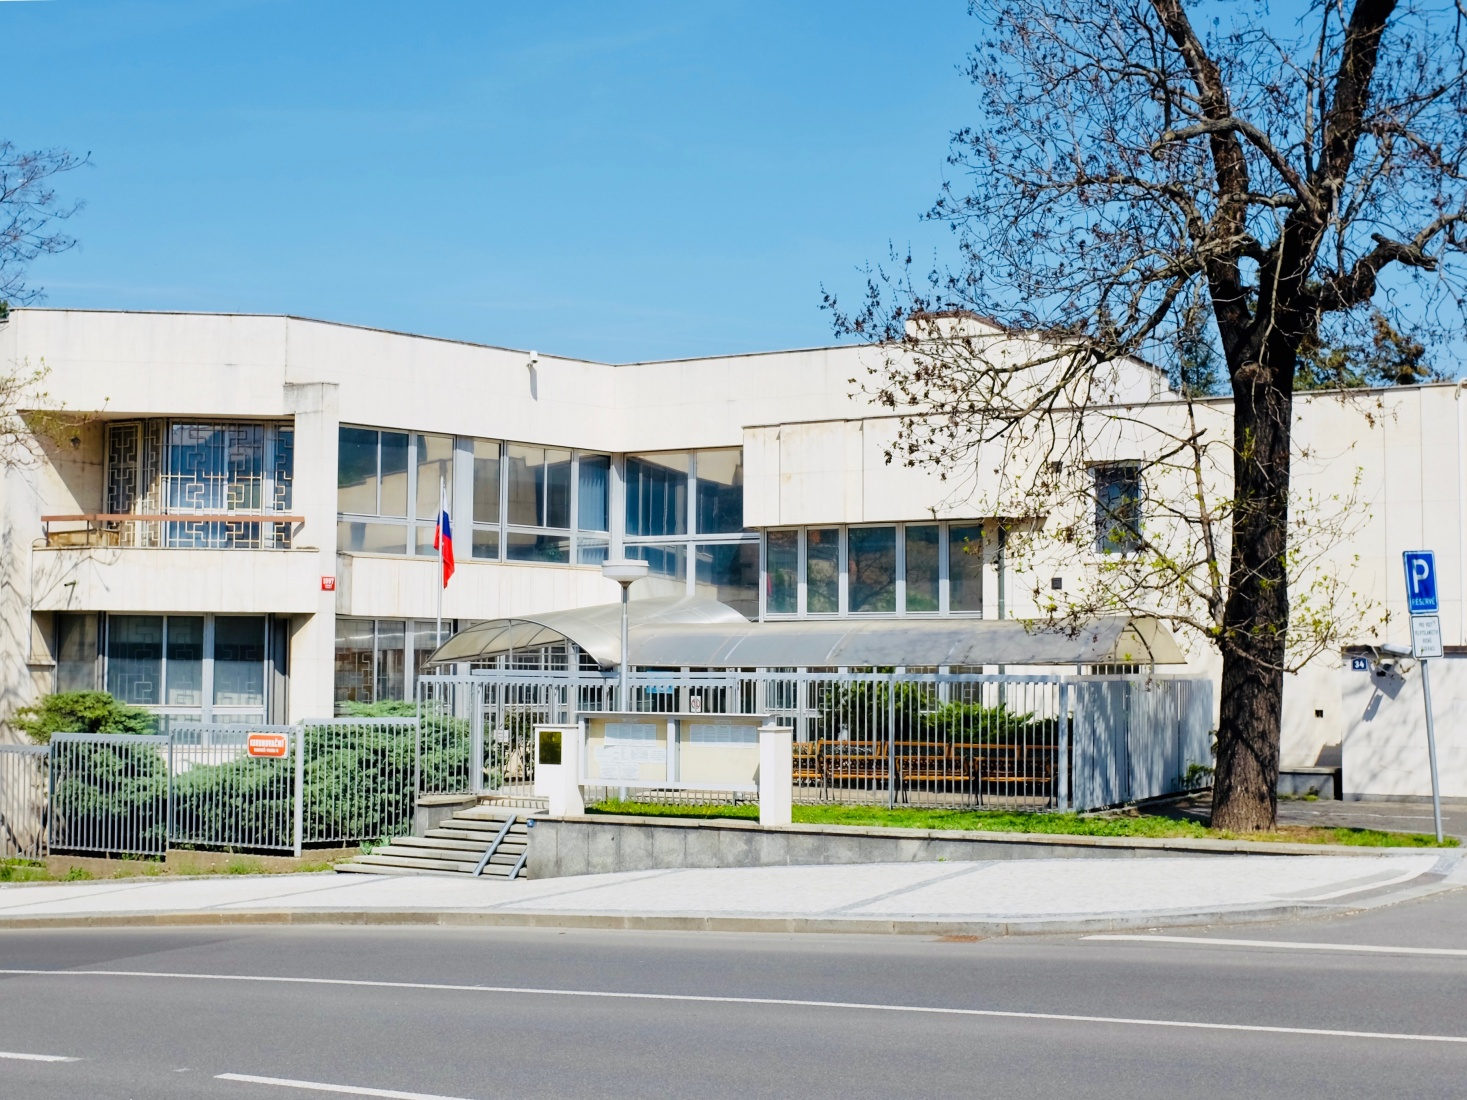 Consular, consulate offices for the Russian Federation Embassy in Prague, Bubeneč, on Korunovační street, as a part of the main embassy compound.